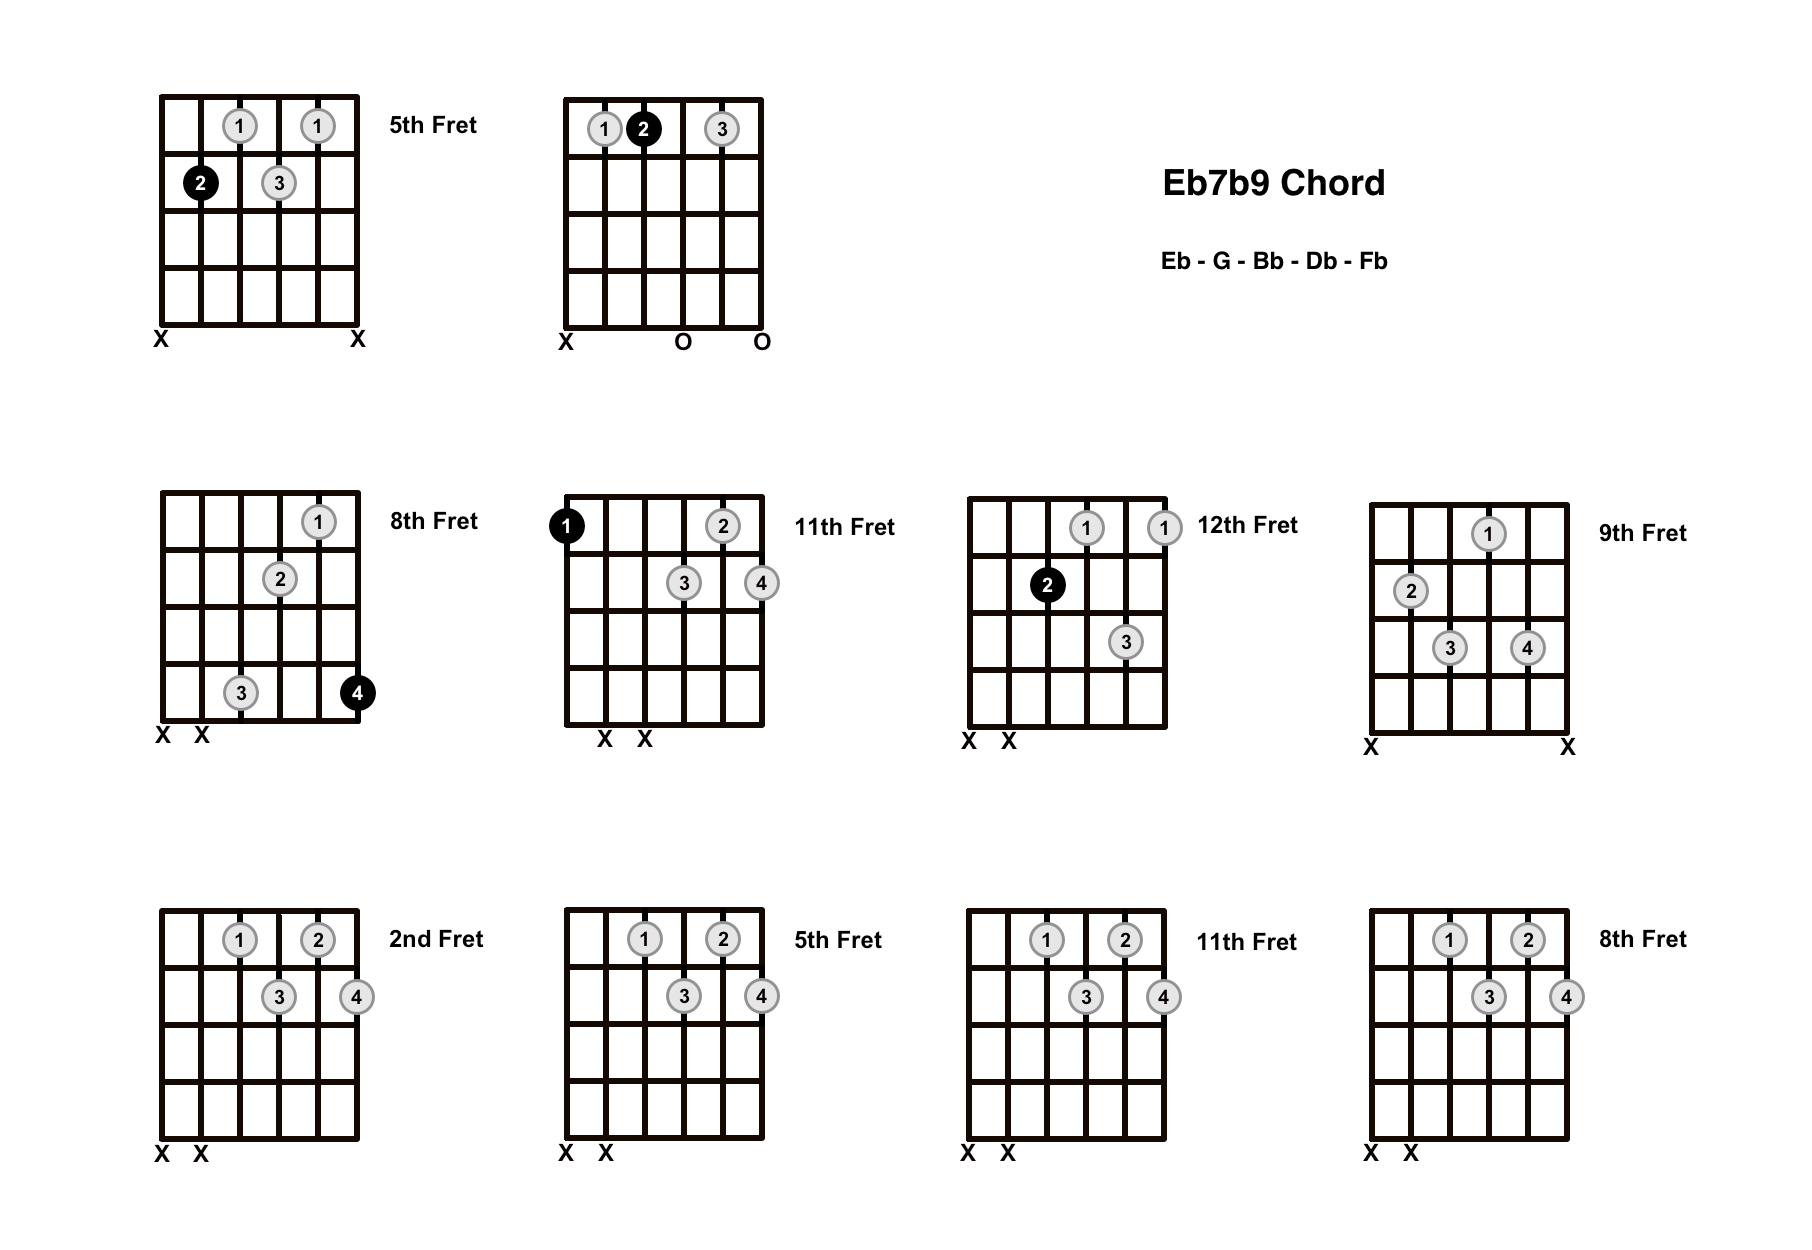 Eb7b9 Chord On The Guitar (E Flat 7 Flat 9) – Diagrams, Finger Positions and Theory